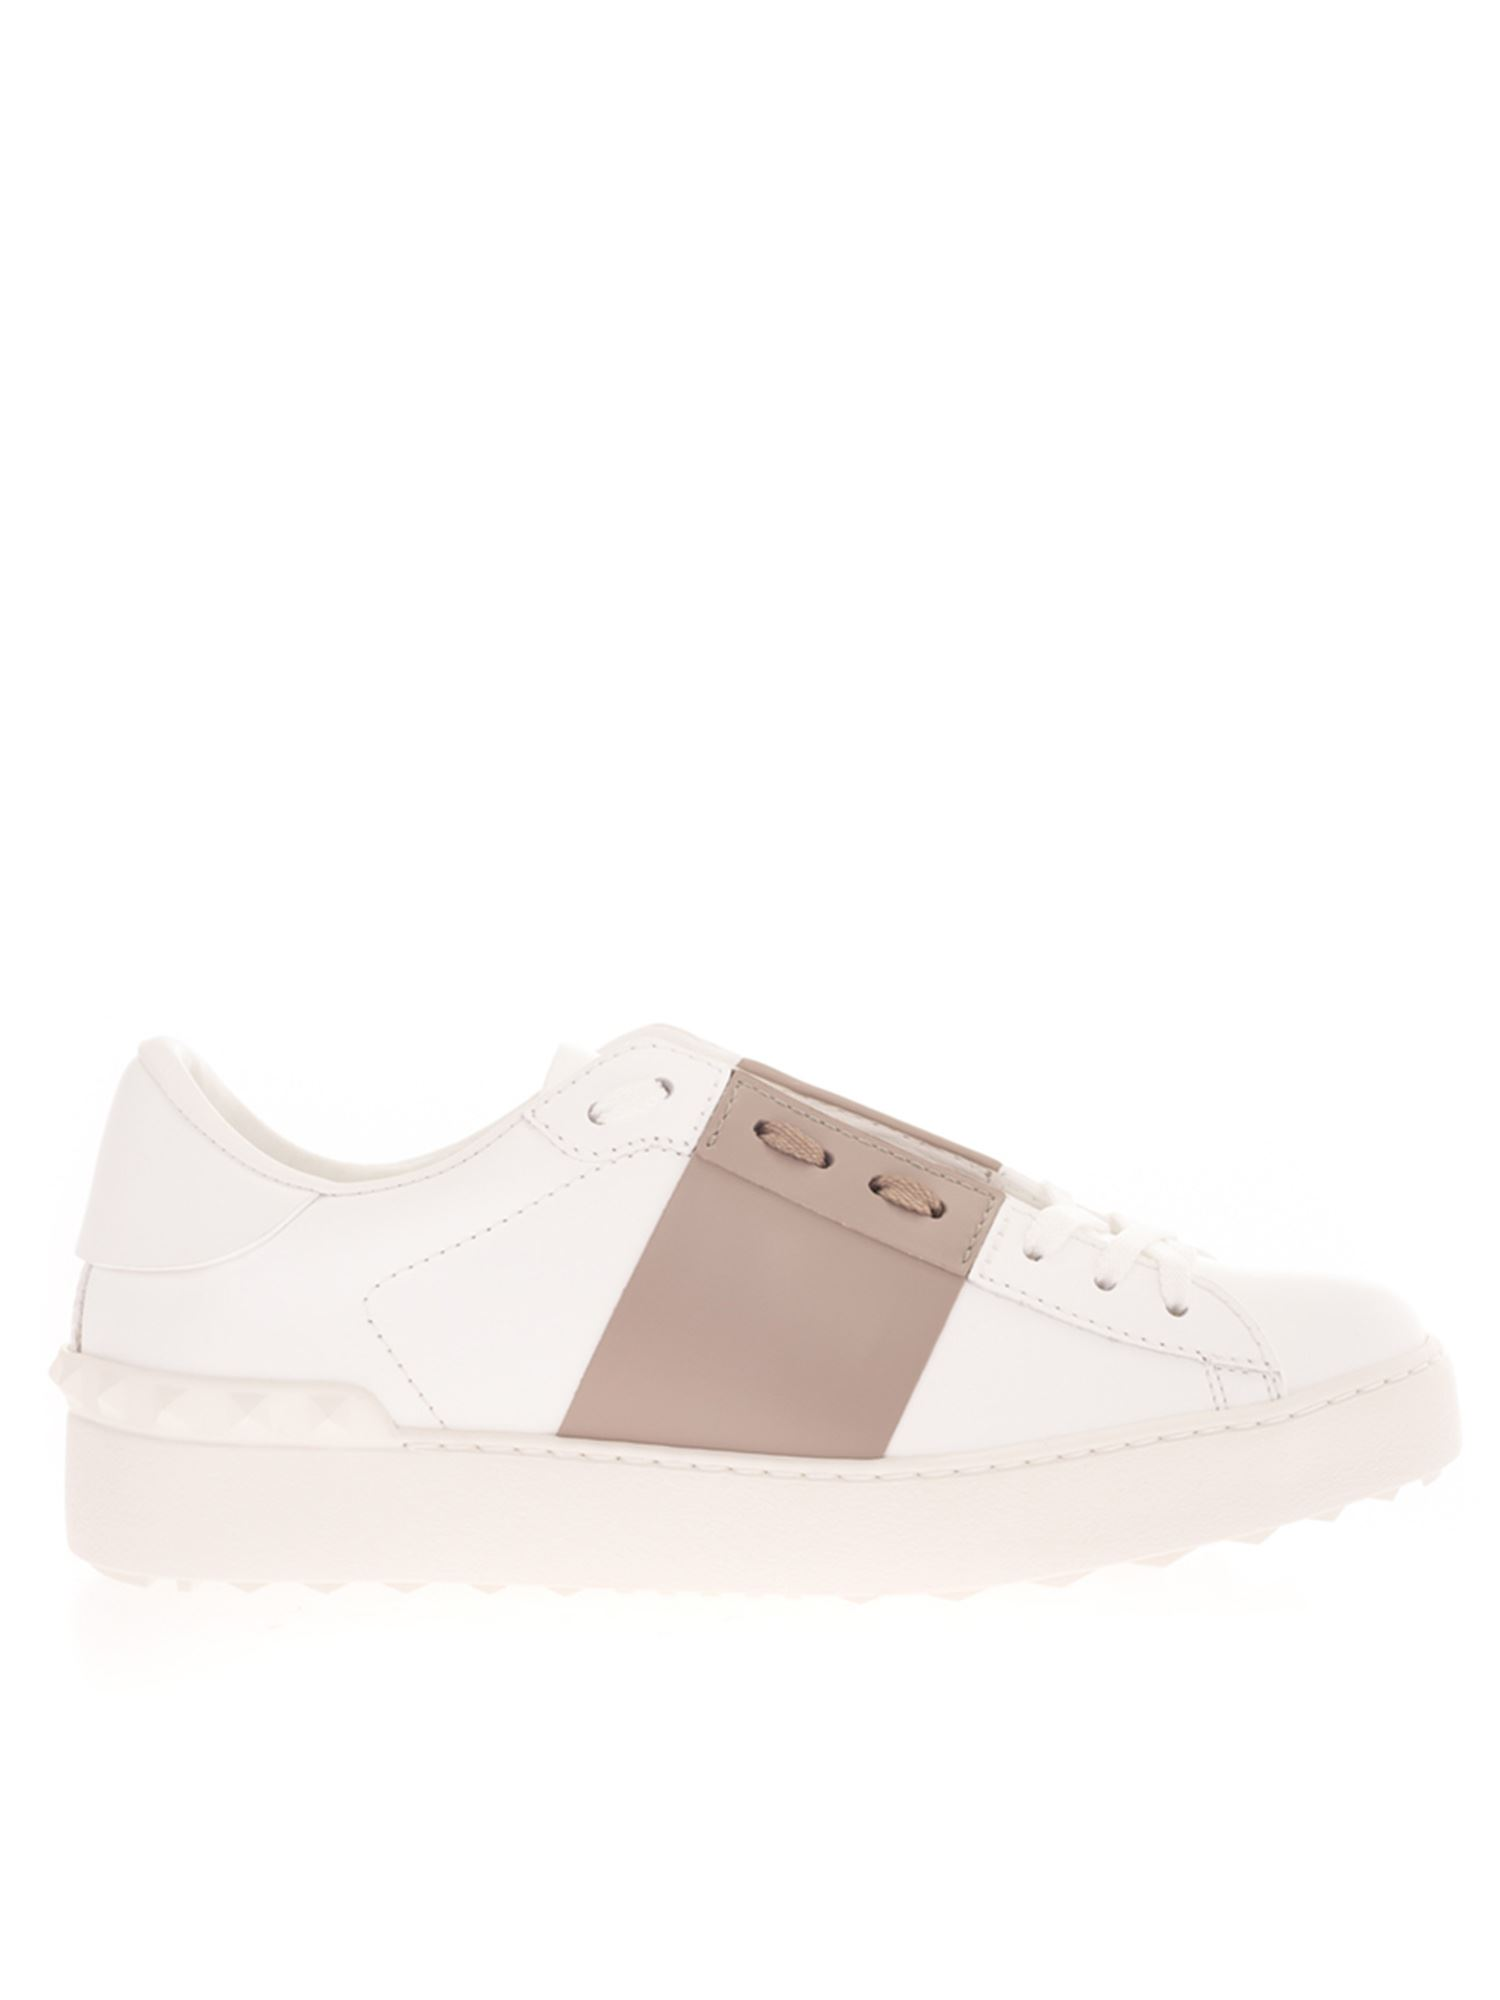 Valentino OPEN SNEAKERS IN WHITE AND BEIGE